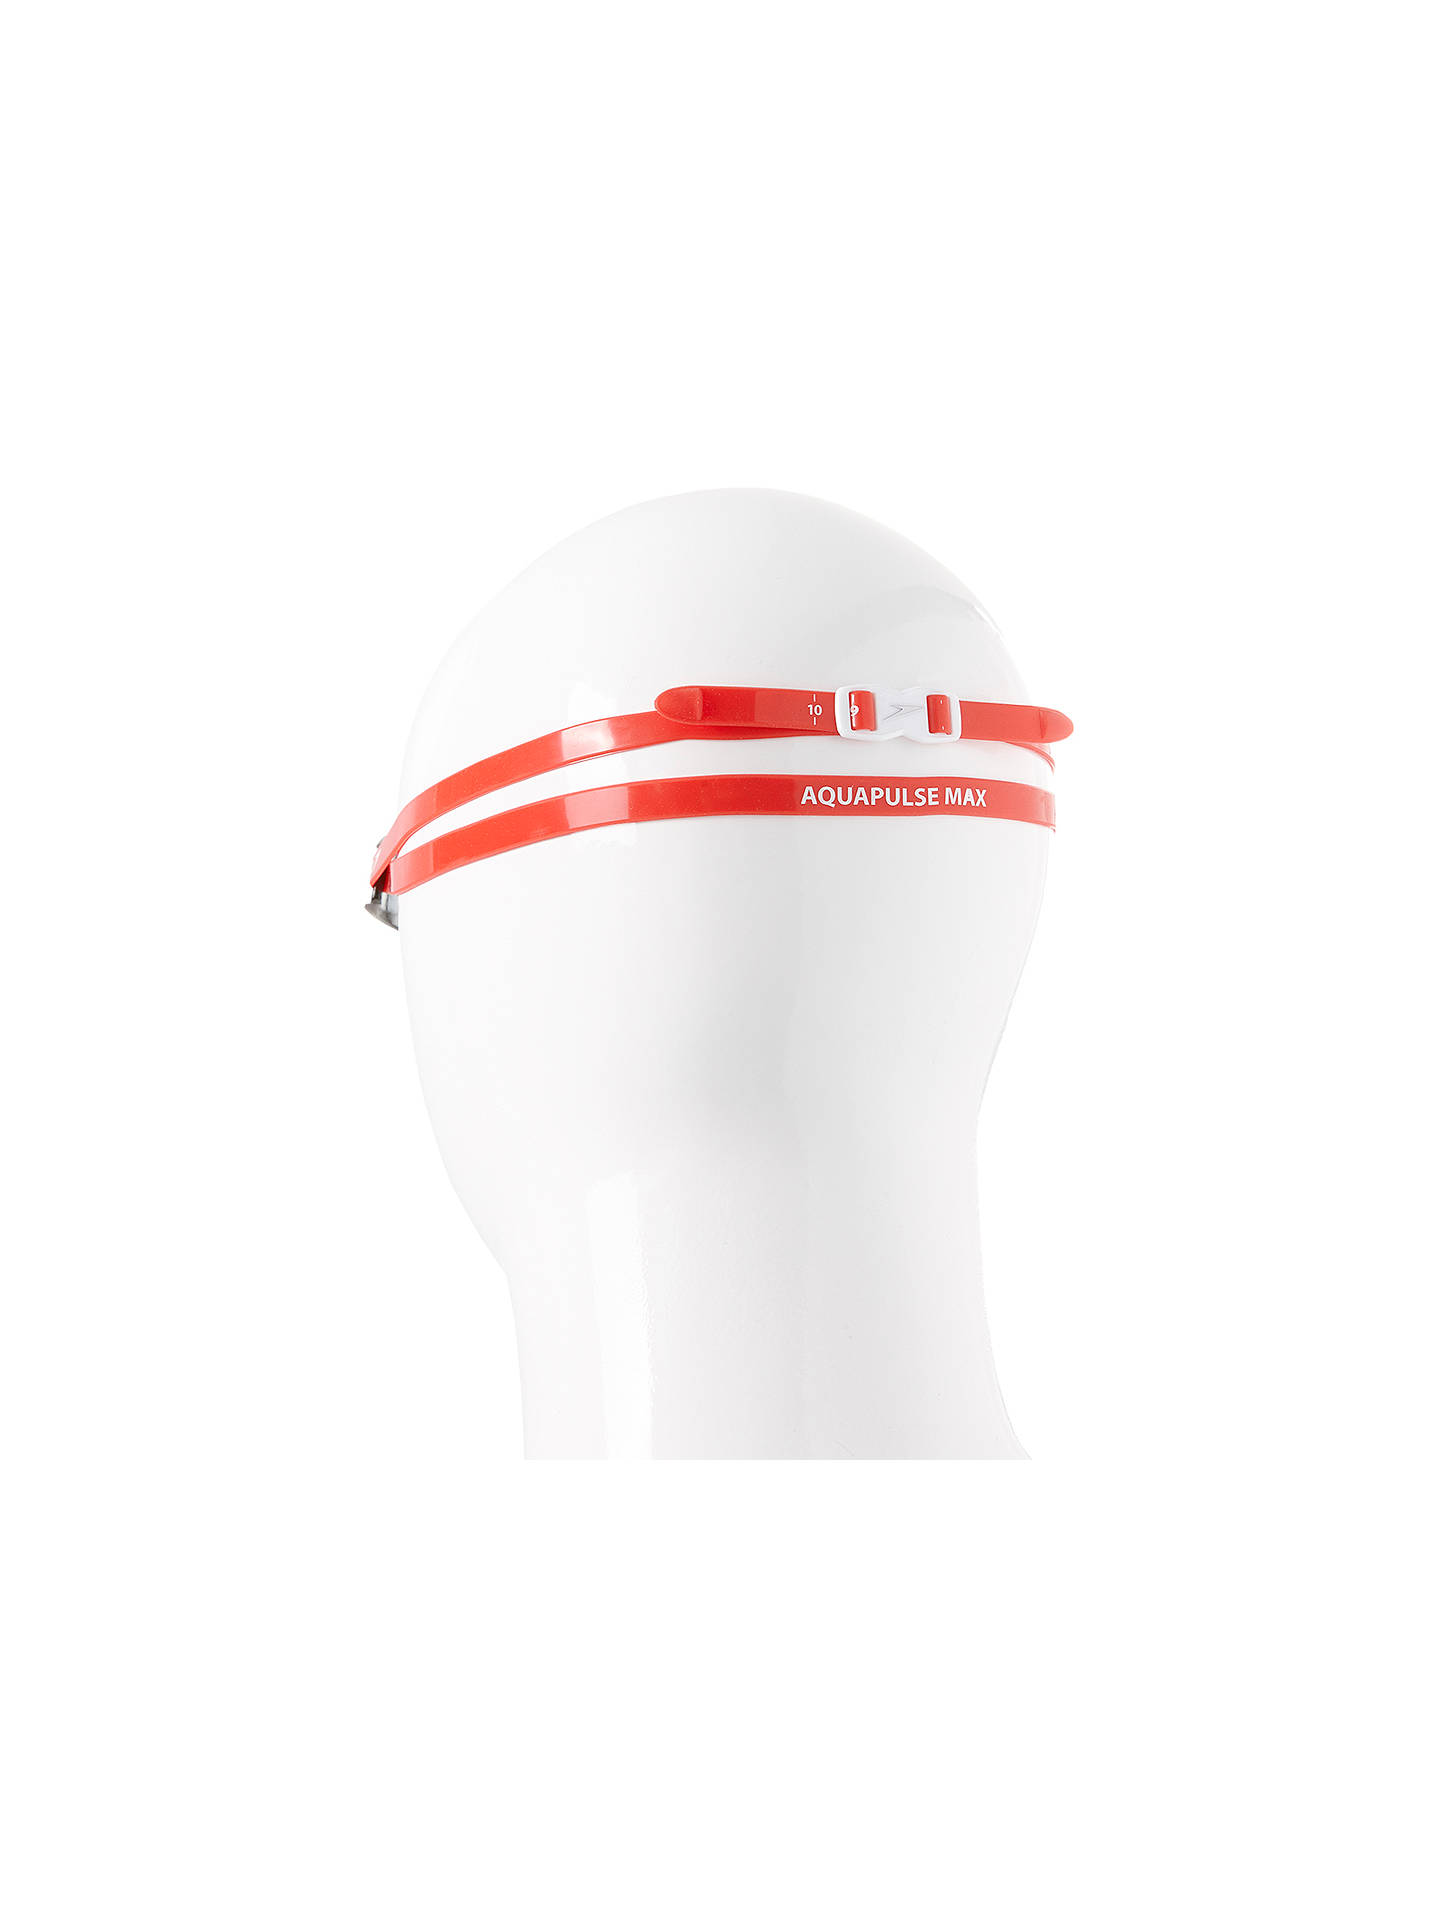 BuySpeedo Aquapulse Max 2 IQfit Goggles, Red/Silver Online at johnlewis.com